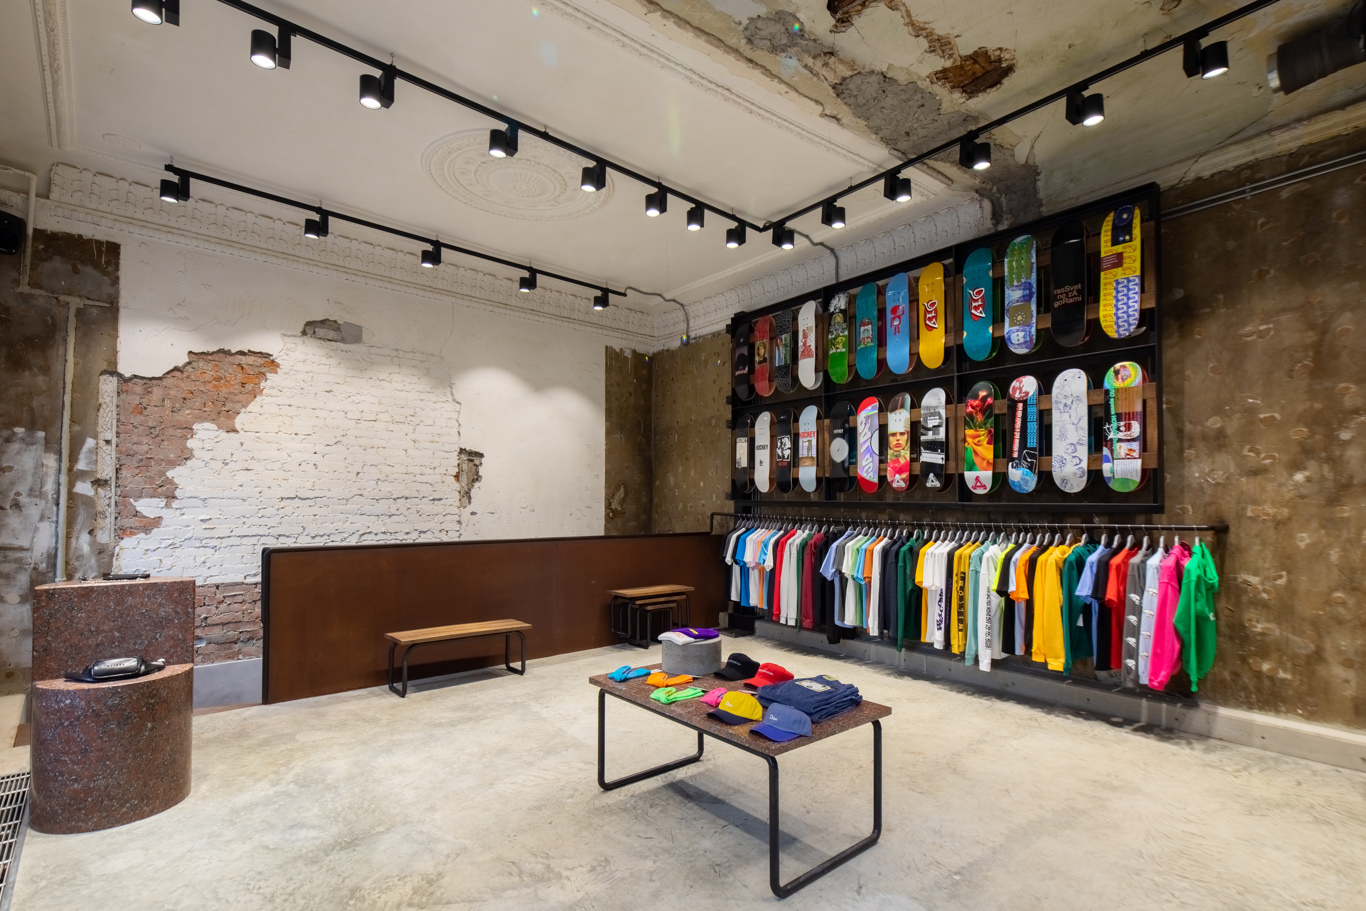 A view of the new Paccbet store